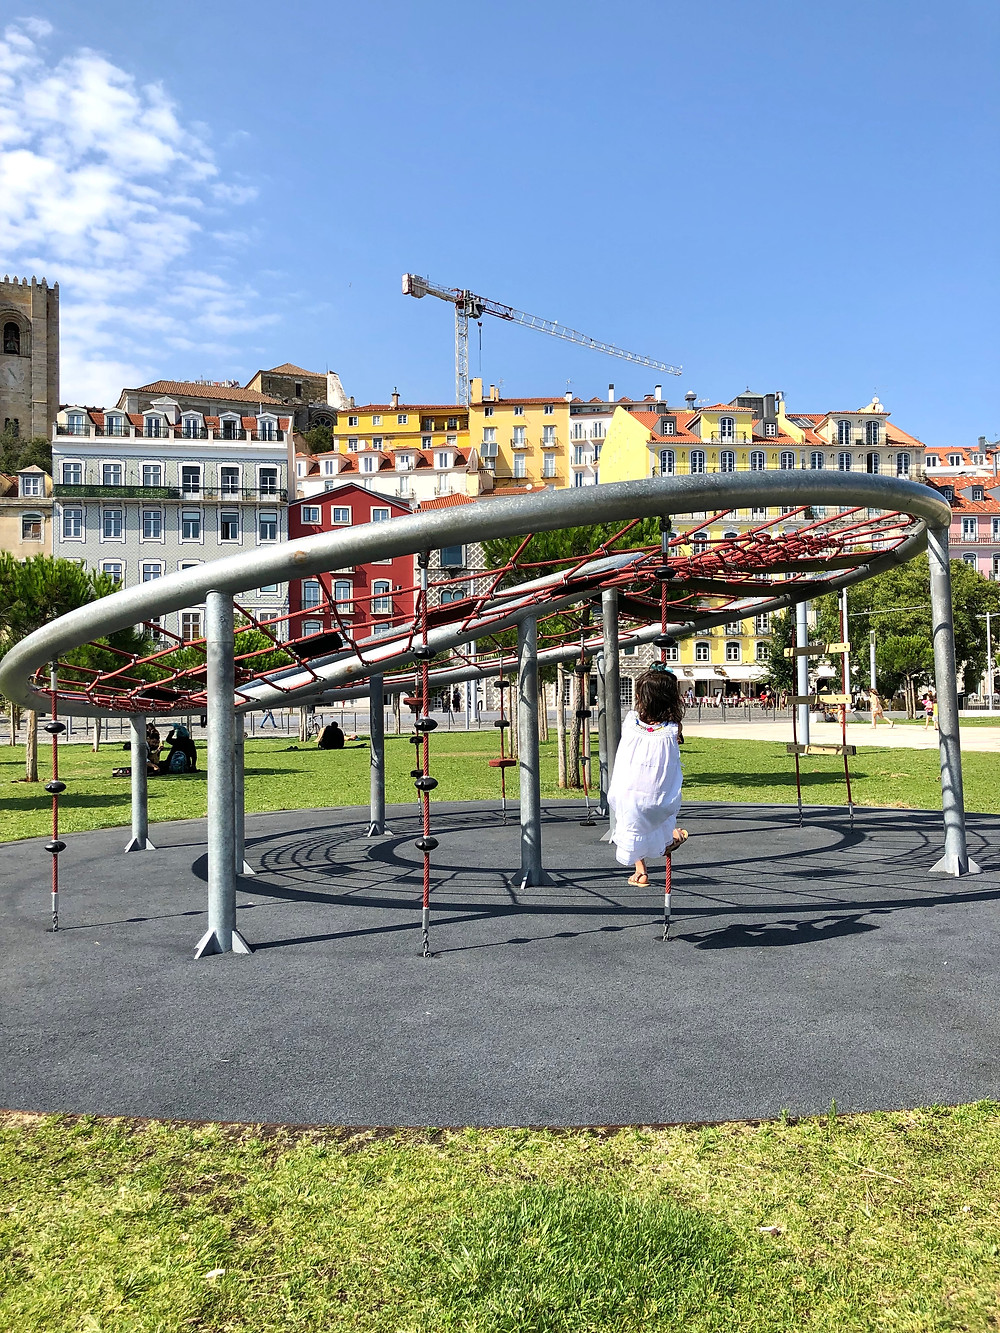 Curious G and Me, Portugal with kids, 4 day Lisbon itinerary, Summer travel with kids, Family travel guide, Sintra with kids, colorful Portugal, colorful Lisbon, photogenic Lisbon, photogenic Portugal, Lisbon with kids, day trip to Sintra, playgrounds in Lisbon, Alfama, Alfama parks